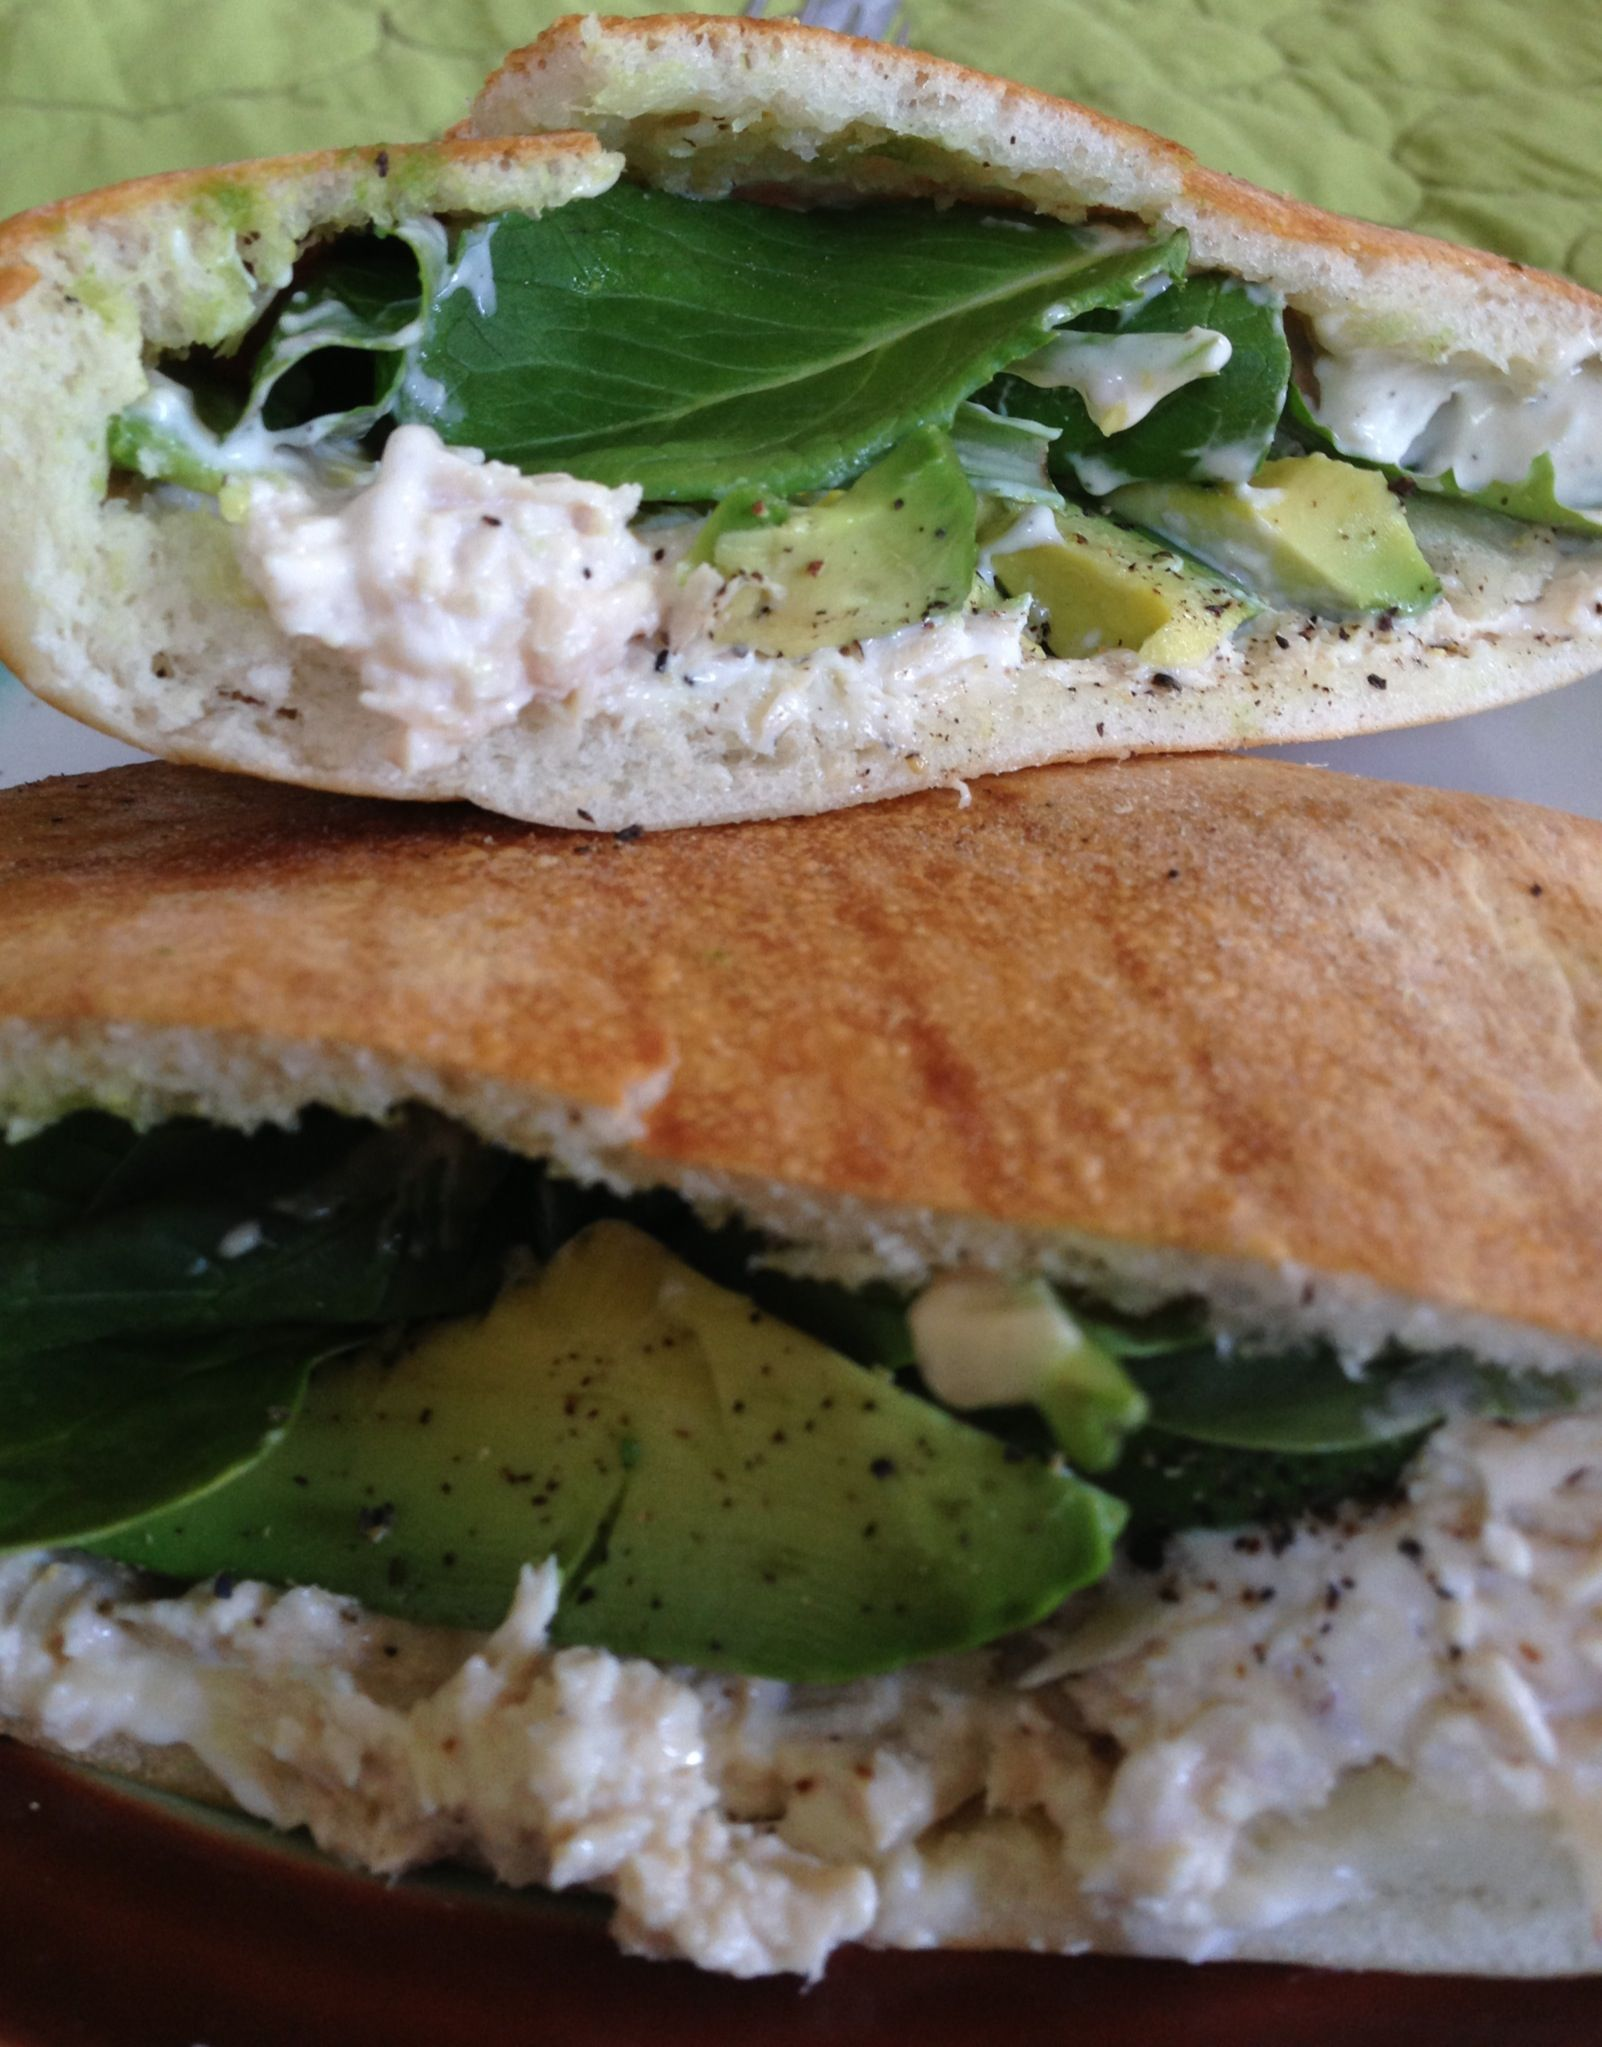 I just made this sandwich: tuna, avocado, spinach, a little creamy Caesar dressing, fresh black pepper, all inside a fresh baked pita (from Petra in SLO) and now I'm gonna eat it! #zormasa